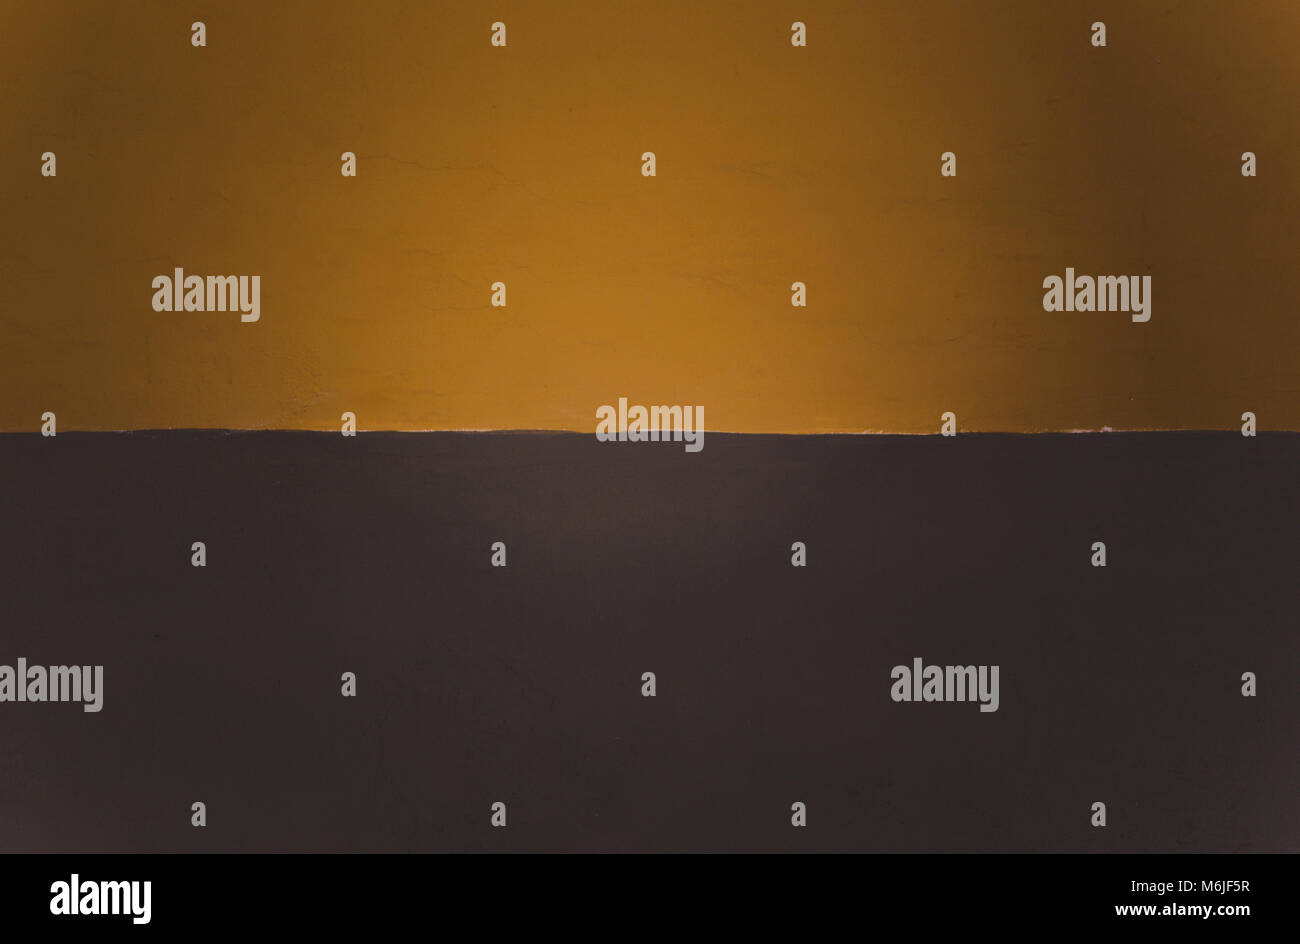 Two-toned split mustard yellow/orange and brown painted background with space for copy - Stock Image